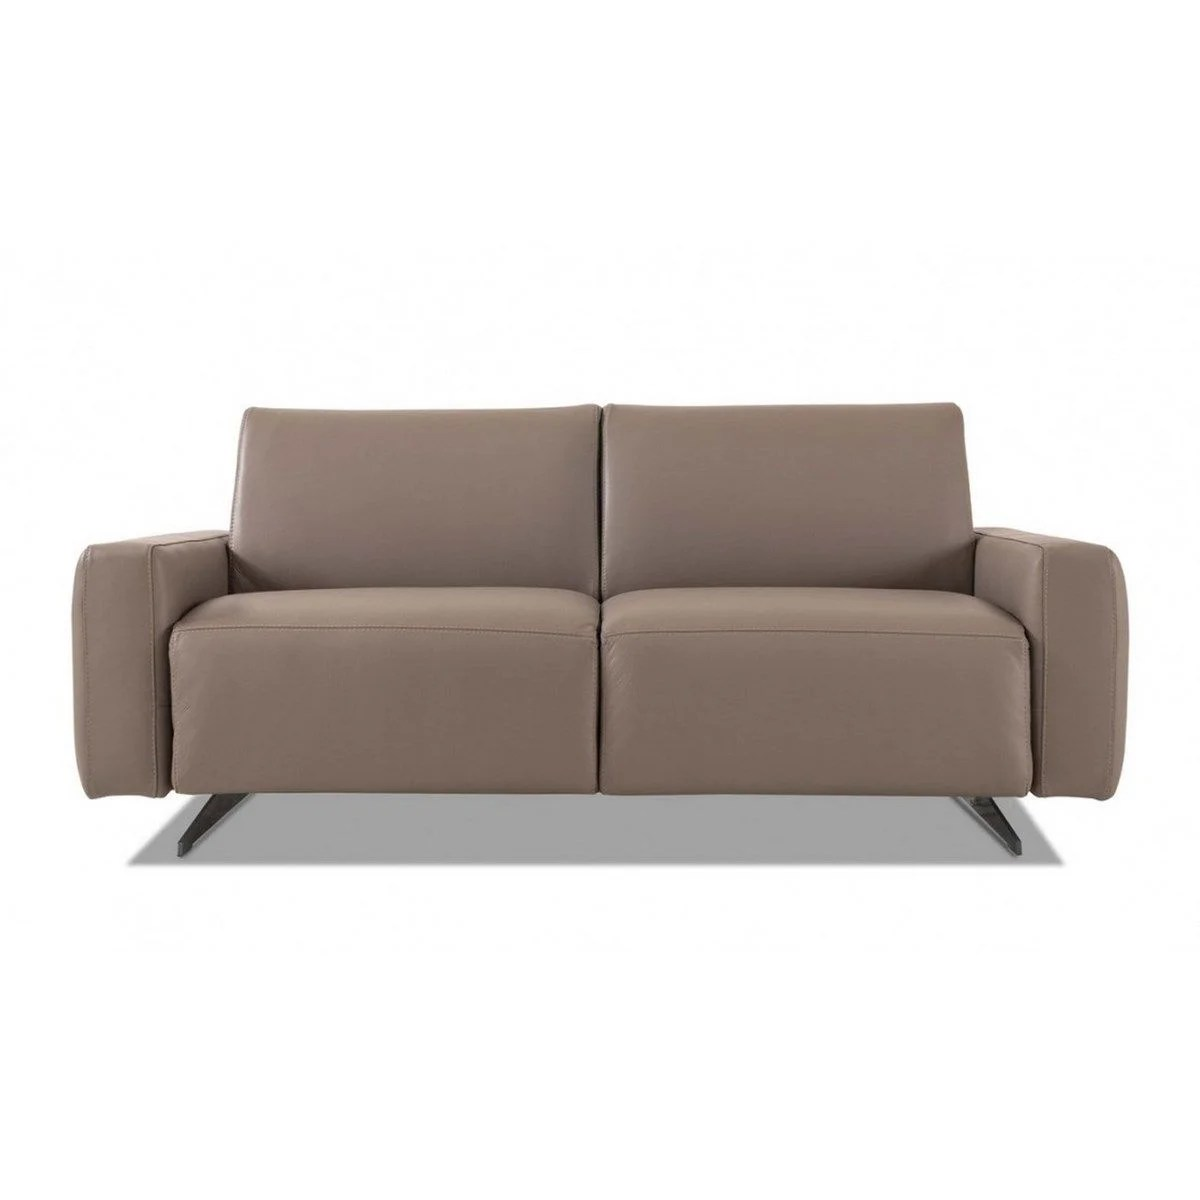 Canape Convertible Couchage Quotidien 140 Cm Sit And Sleep Taupe Seanroyale La Redoute